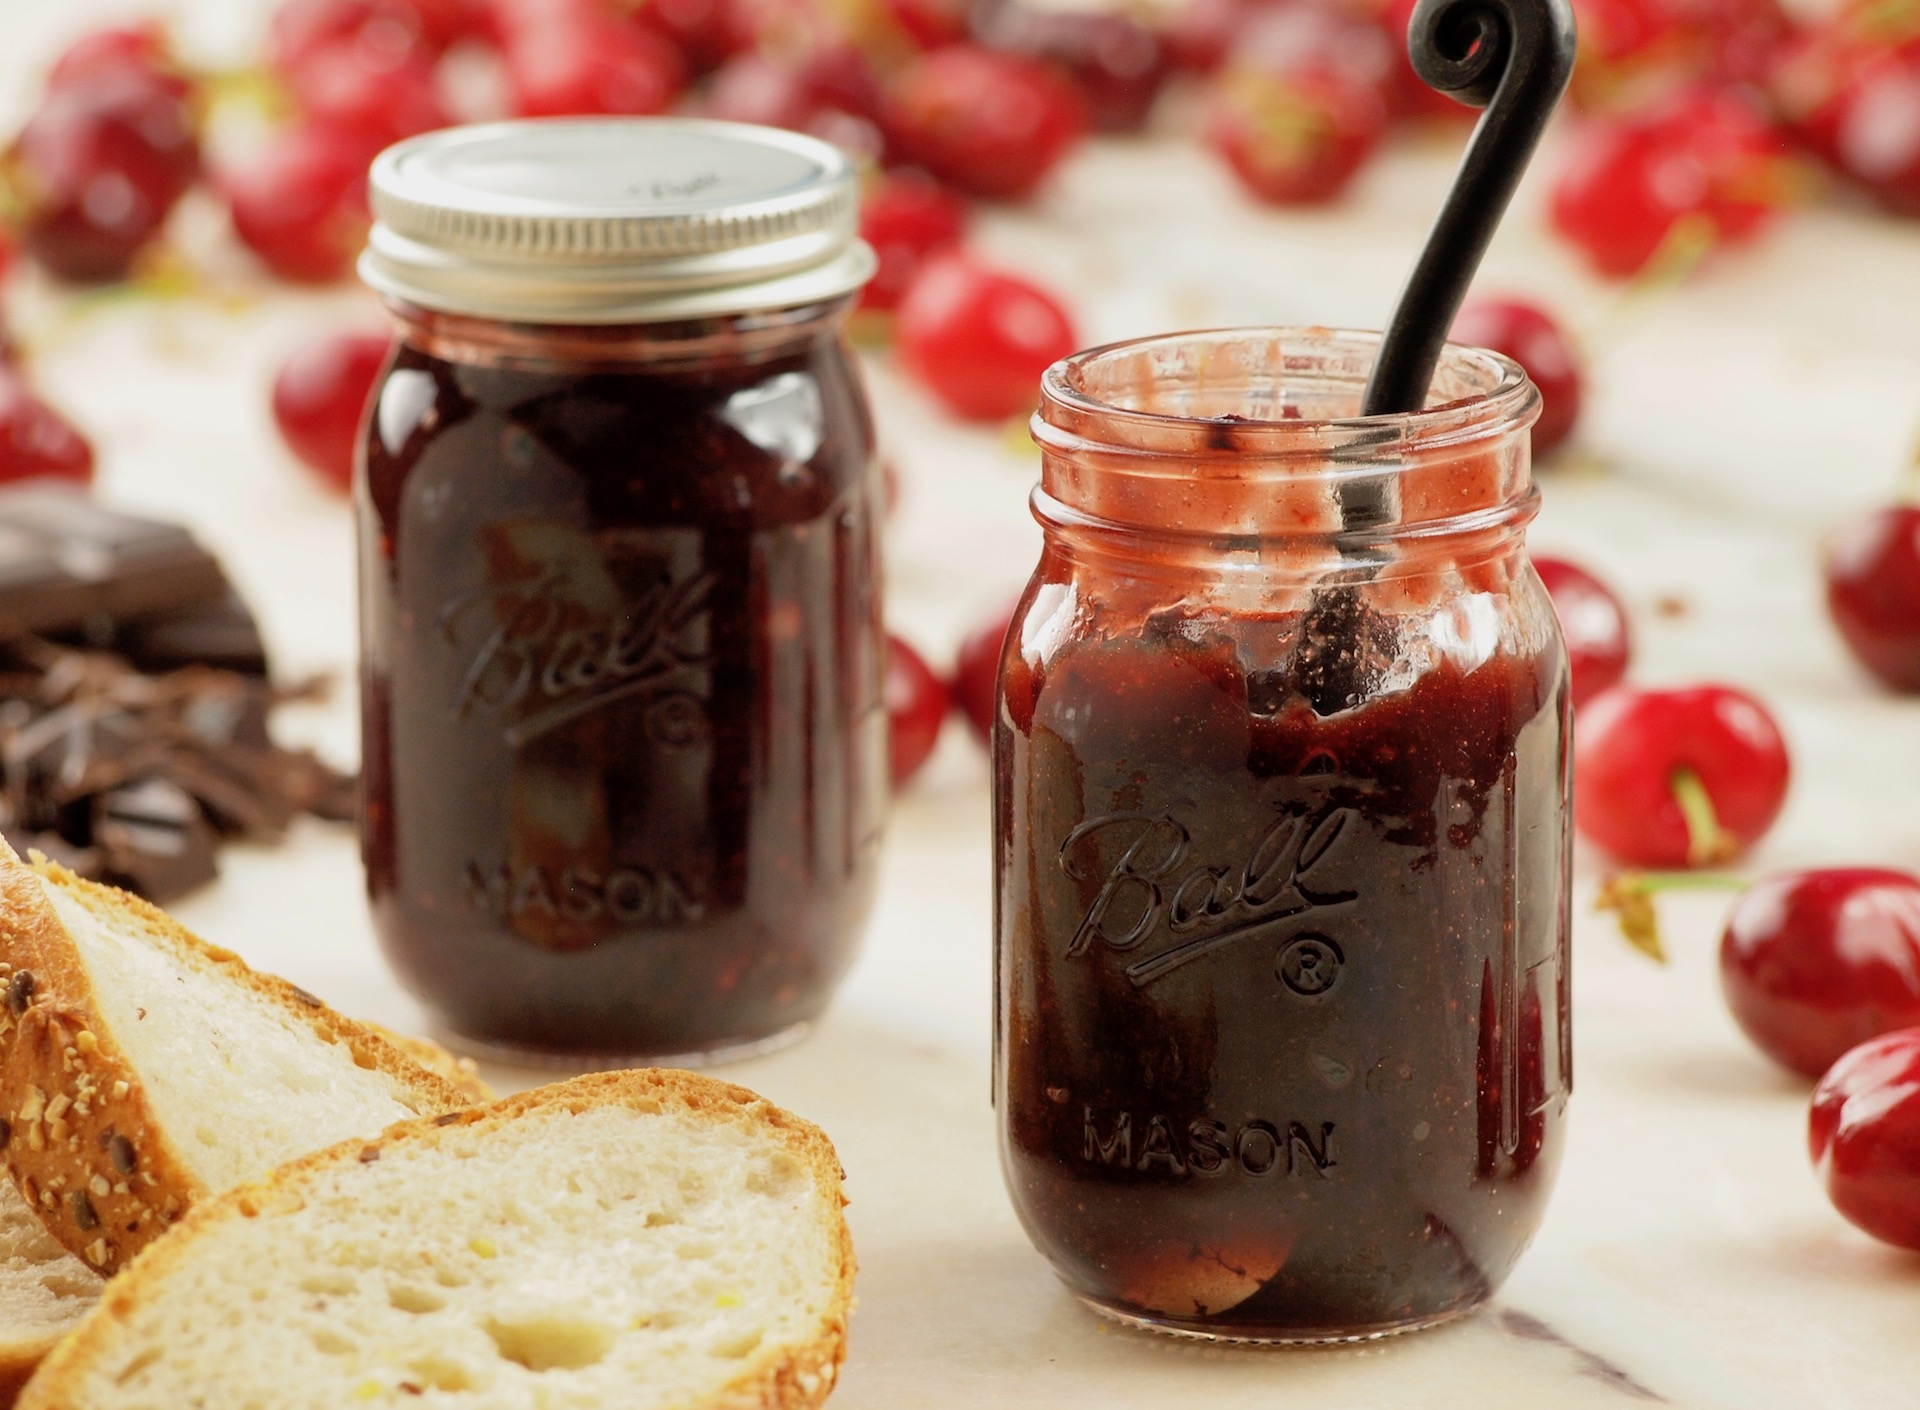 Emily's Chocolate Covered Cherry Jam